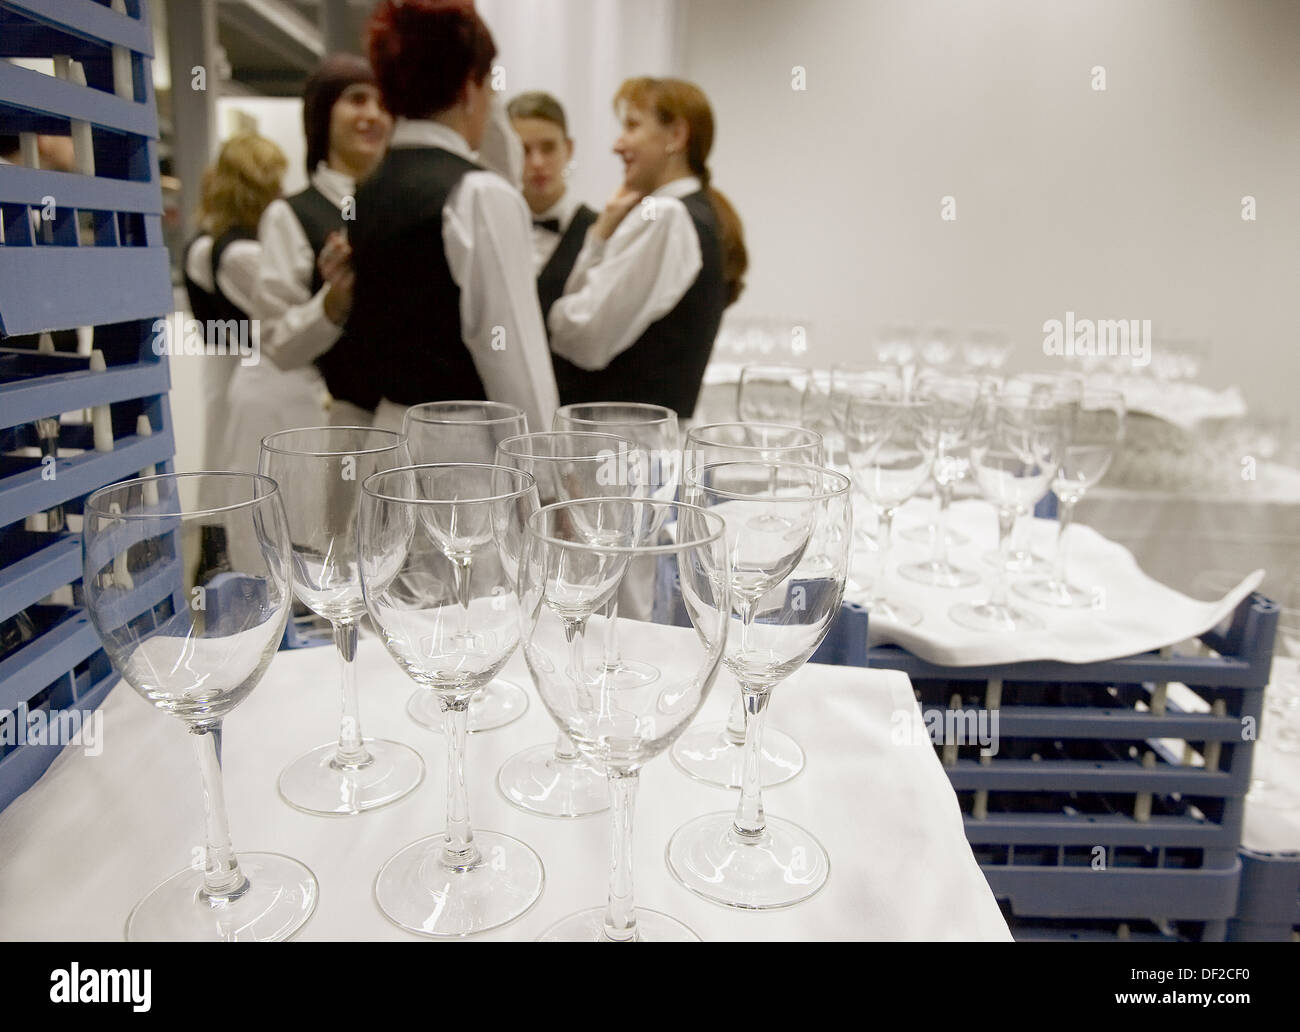 Mujika Decoracion Wineglasses And Waiters Catering Opening Of Juantxo Mugica Stock